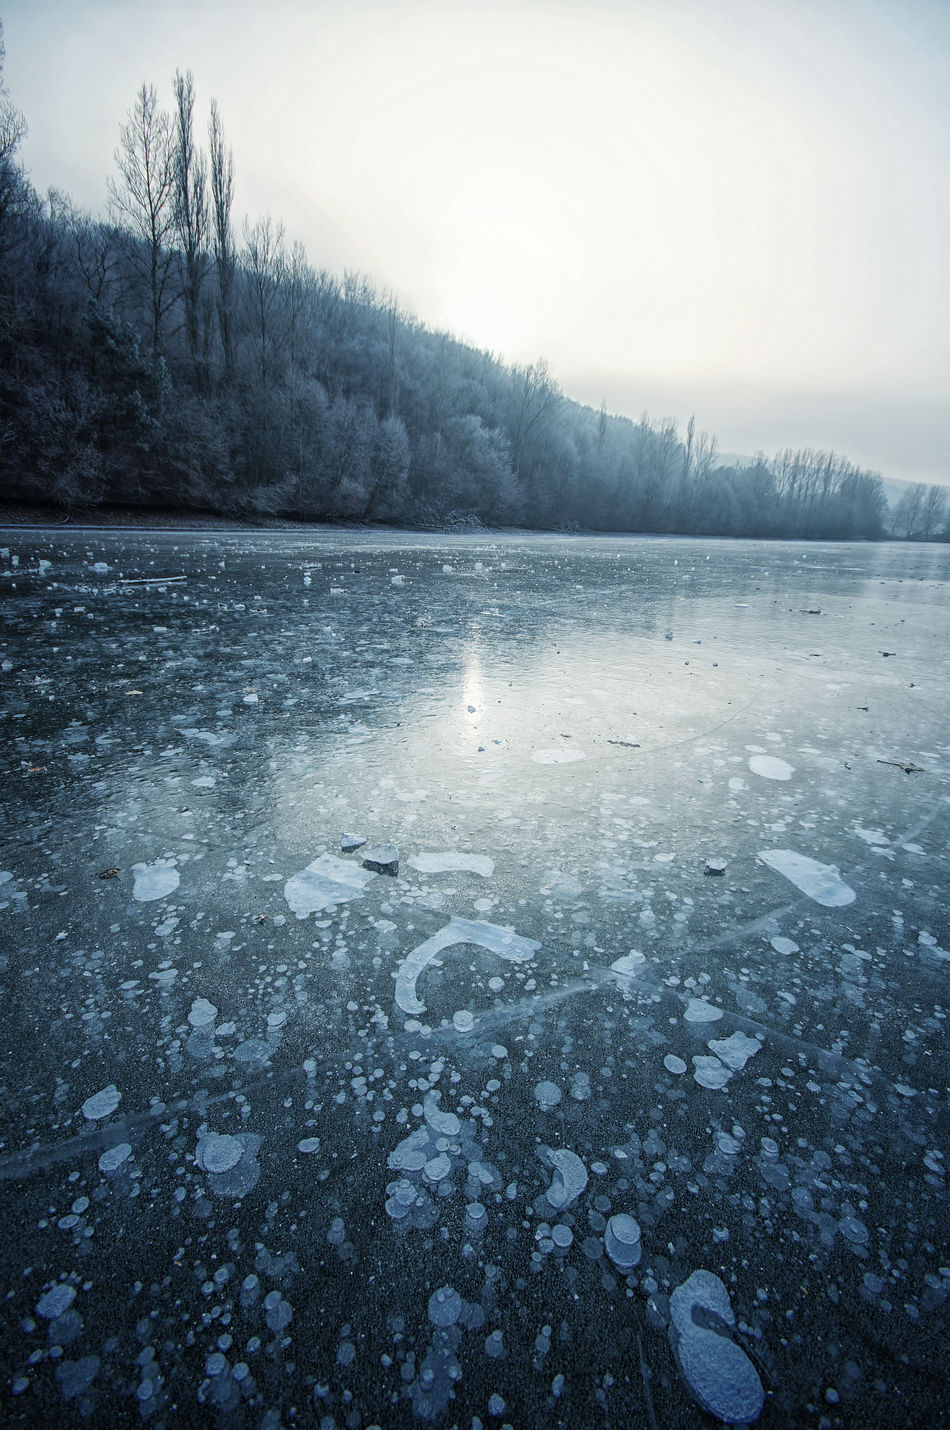 Frozen lake in Prasnik-Vrbove, Slovakia. Beauty In Nature Bubbles Cold Cold Temperature Day Frost Frozen Frozen Lake Frozen Water Hill Ice Lake Landscape Nature No People Outdoors Seasonscollection Sky Snow Tree Water Weather Winter